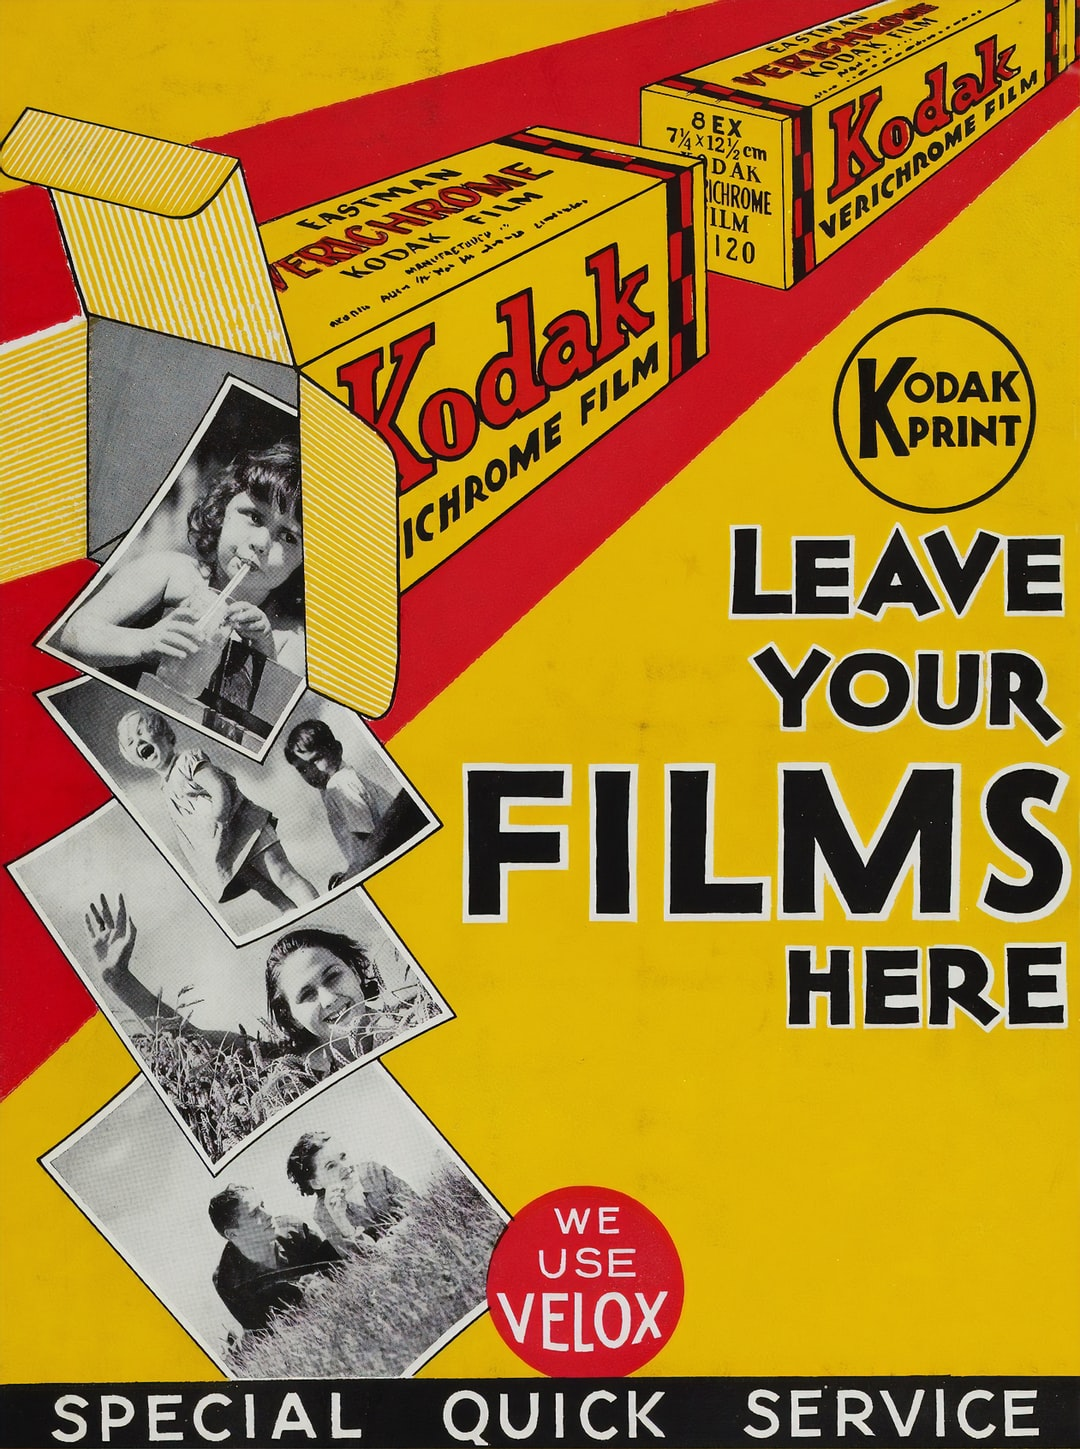 Poster - 'Leave Your Films Here' Museums Victoria Courtesy of Kodak (Australasia) Pty Ltd https://collections.museumvictoria.com.au/items/1382983